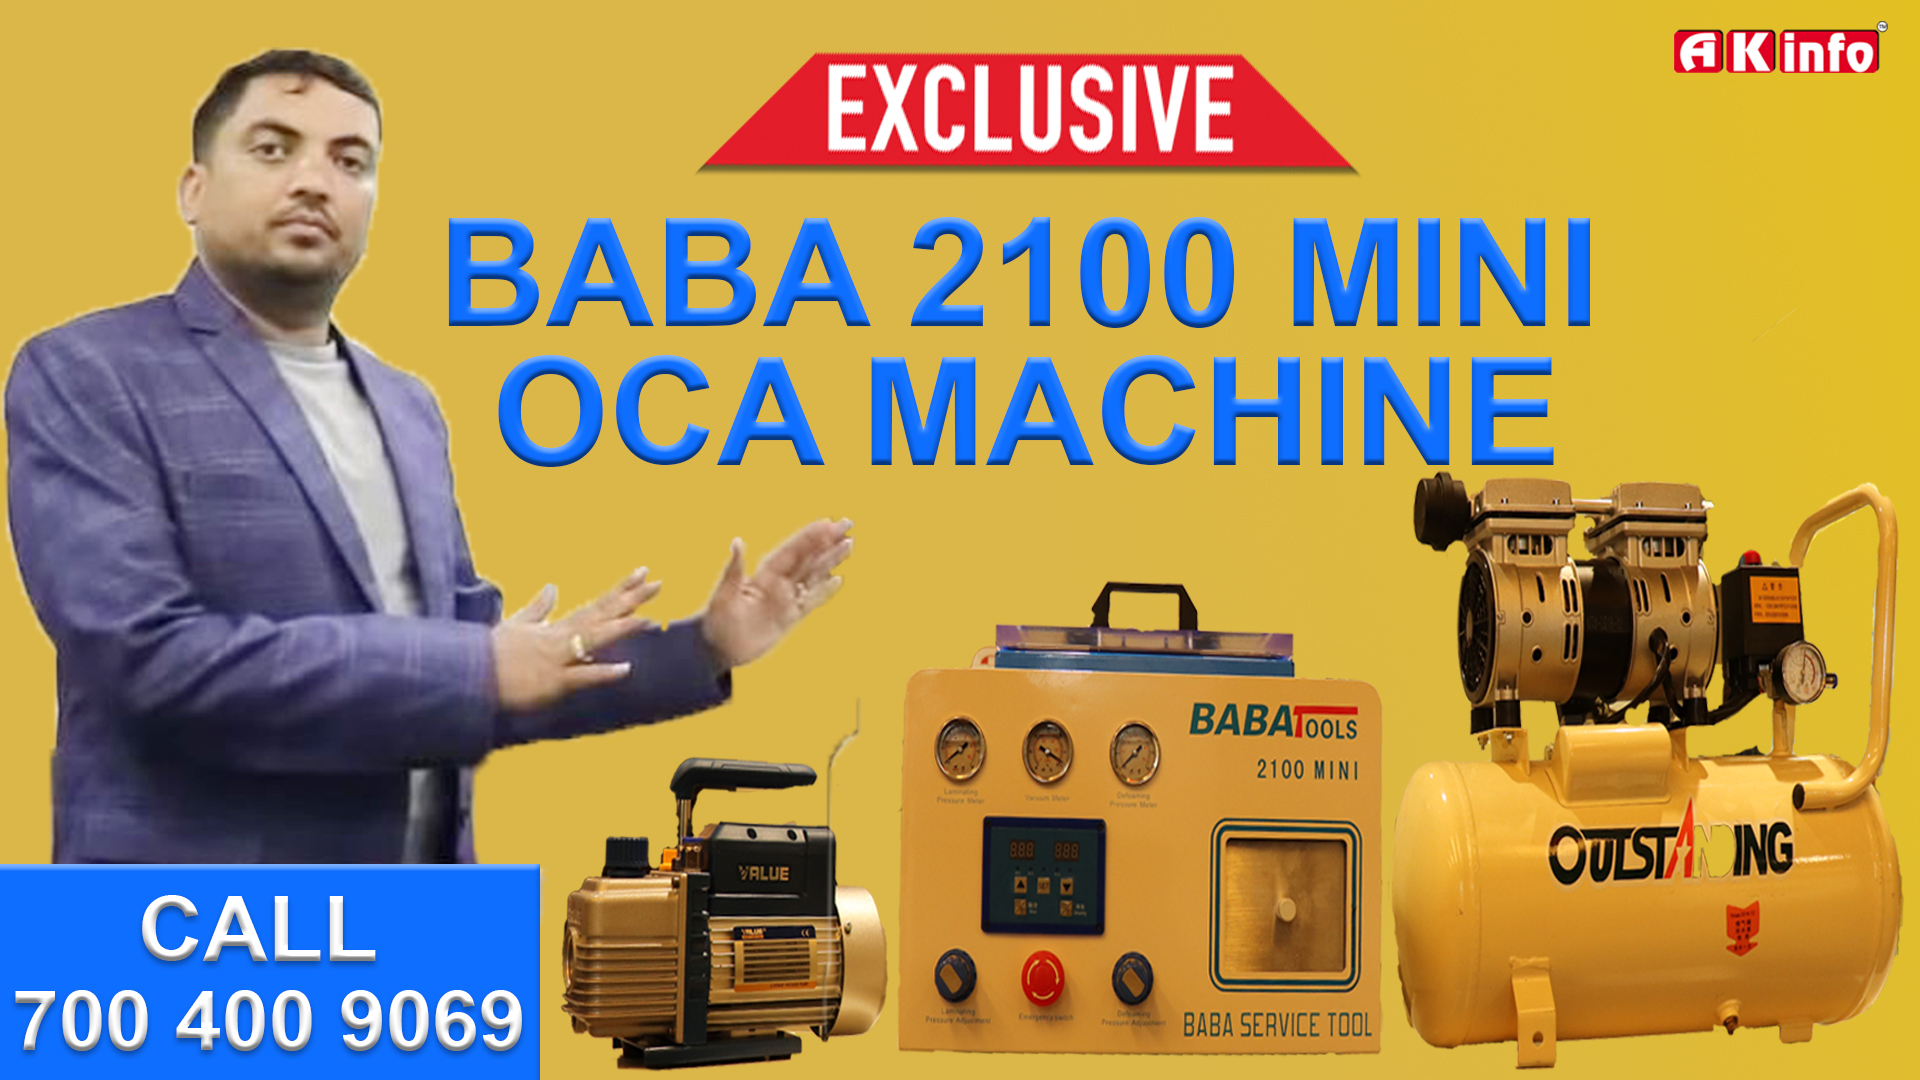 buy-baba-2100-mini-oca-machine